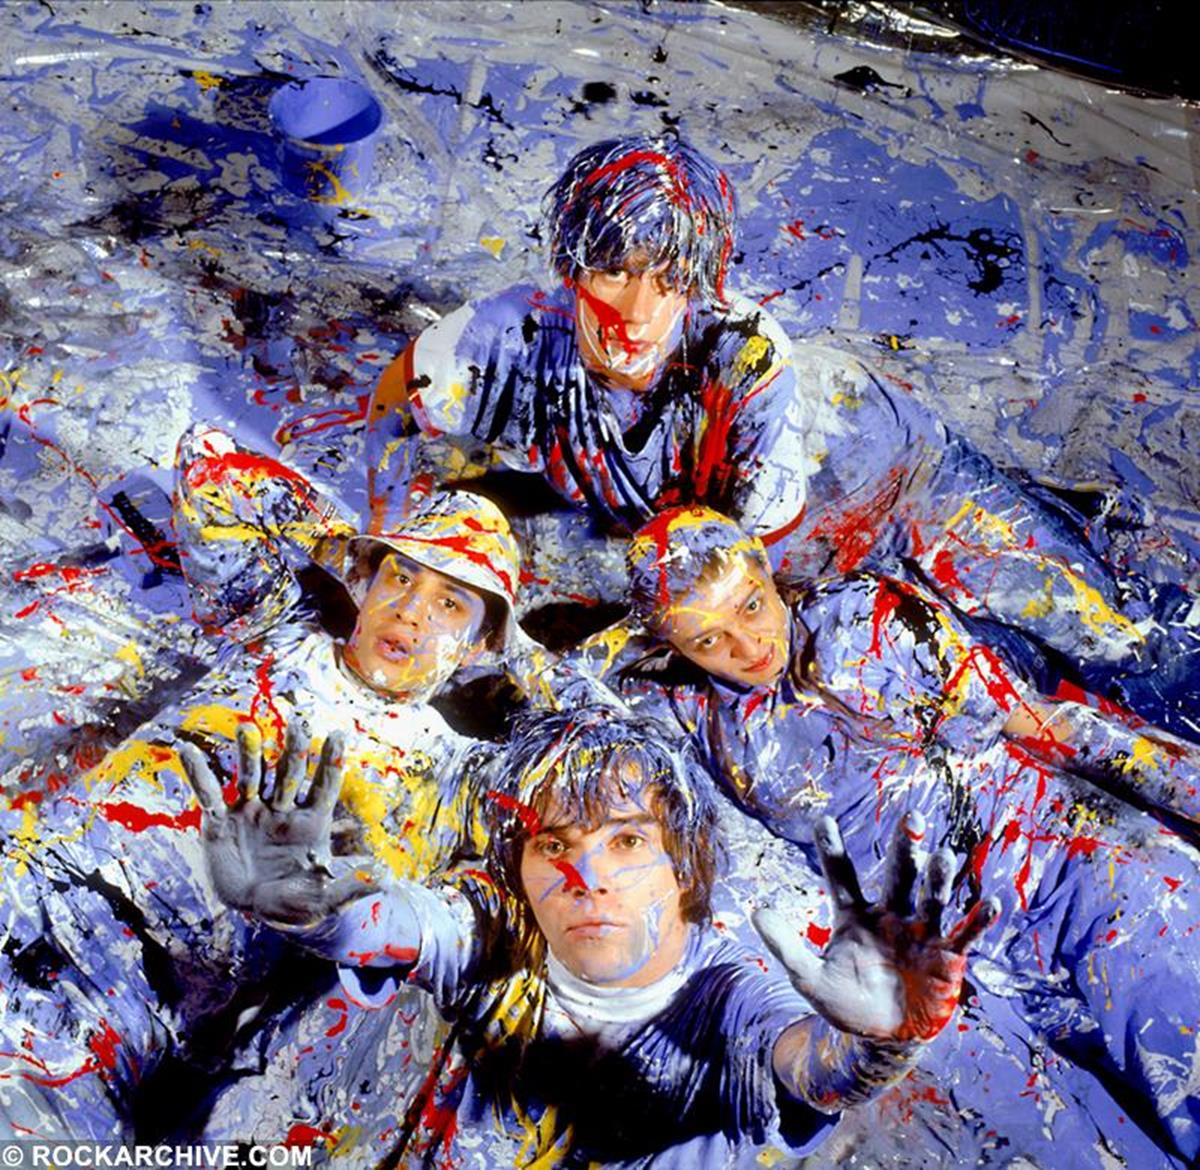 The iconic Stone Roses NME cover, taken in November 1989. Photographer Kevin Cummins says, 'I'd wanted to photograph the band (Ian Brown, John Squire, Mani and Reni) as a John Squire painting for ages. We finally set it up - they could only do it on a Sunday - in Manchester. I spent the morning turning the studio into a polythene cube - I hadn't told the owner our plan and I was worried about his studio looking like we'd played paintball for 24 hours in there. John brought the paint - we started with blue and white - for Manchester City - my team. Each time he added another colour he would paint himself then lie in the shot. After two hours without heating - lying in cold wet paint we'd got the shots. That's when I broke the news to them that there were no showers in the studio. They all had to walk through Manchester City centre dripping in multi coloured paint and go back to Ian Brown's flat to shower it off. The handprints are still down the stairwell of the building.' © Kevin Cummins